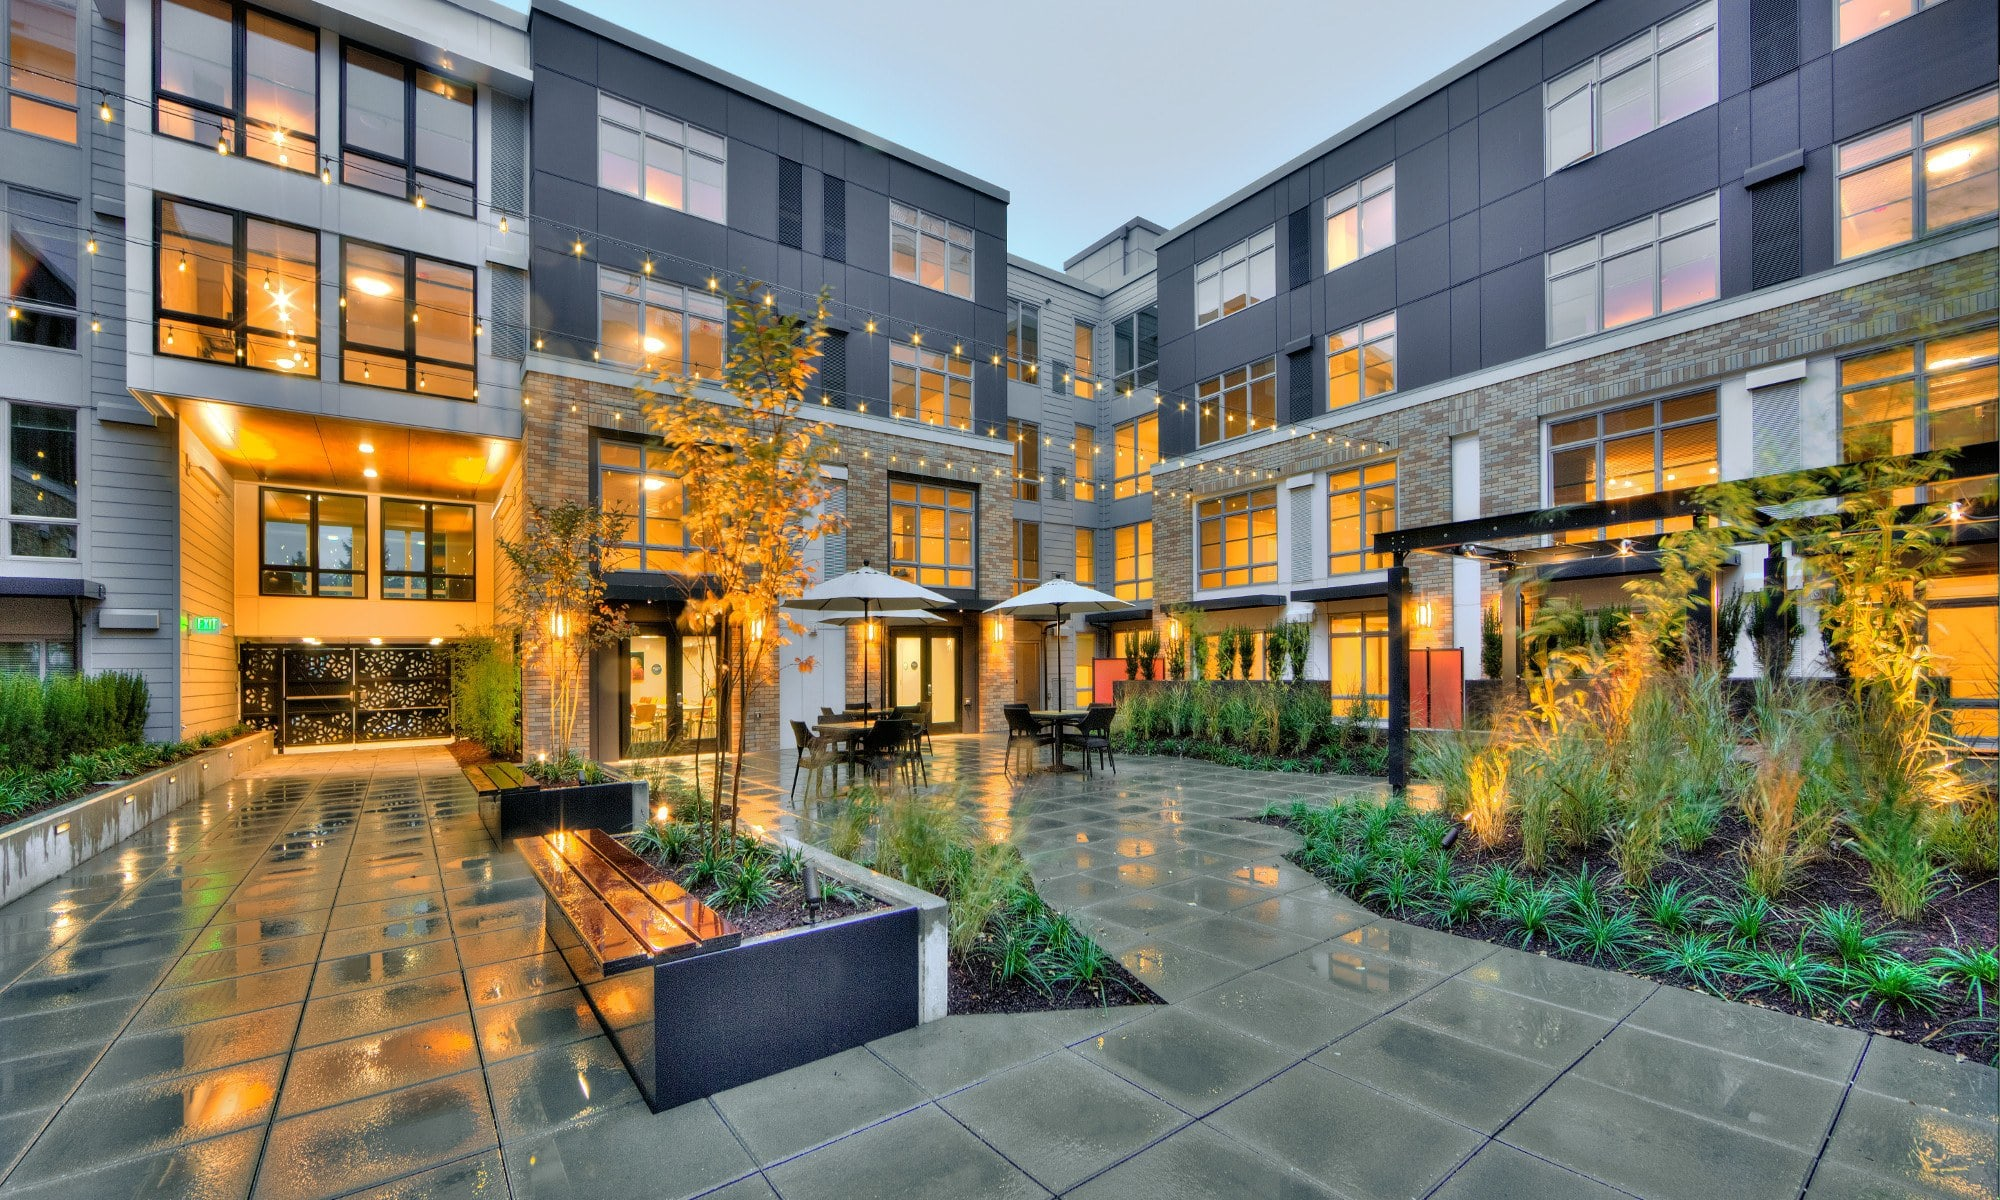 Floor Plans For 3 Bedroom Apartments Capitol Hill Seattle Wa Apartments For Rent The Lyric